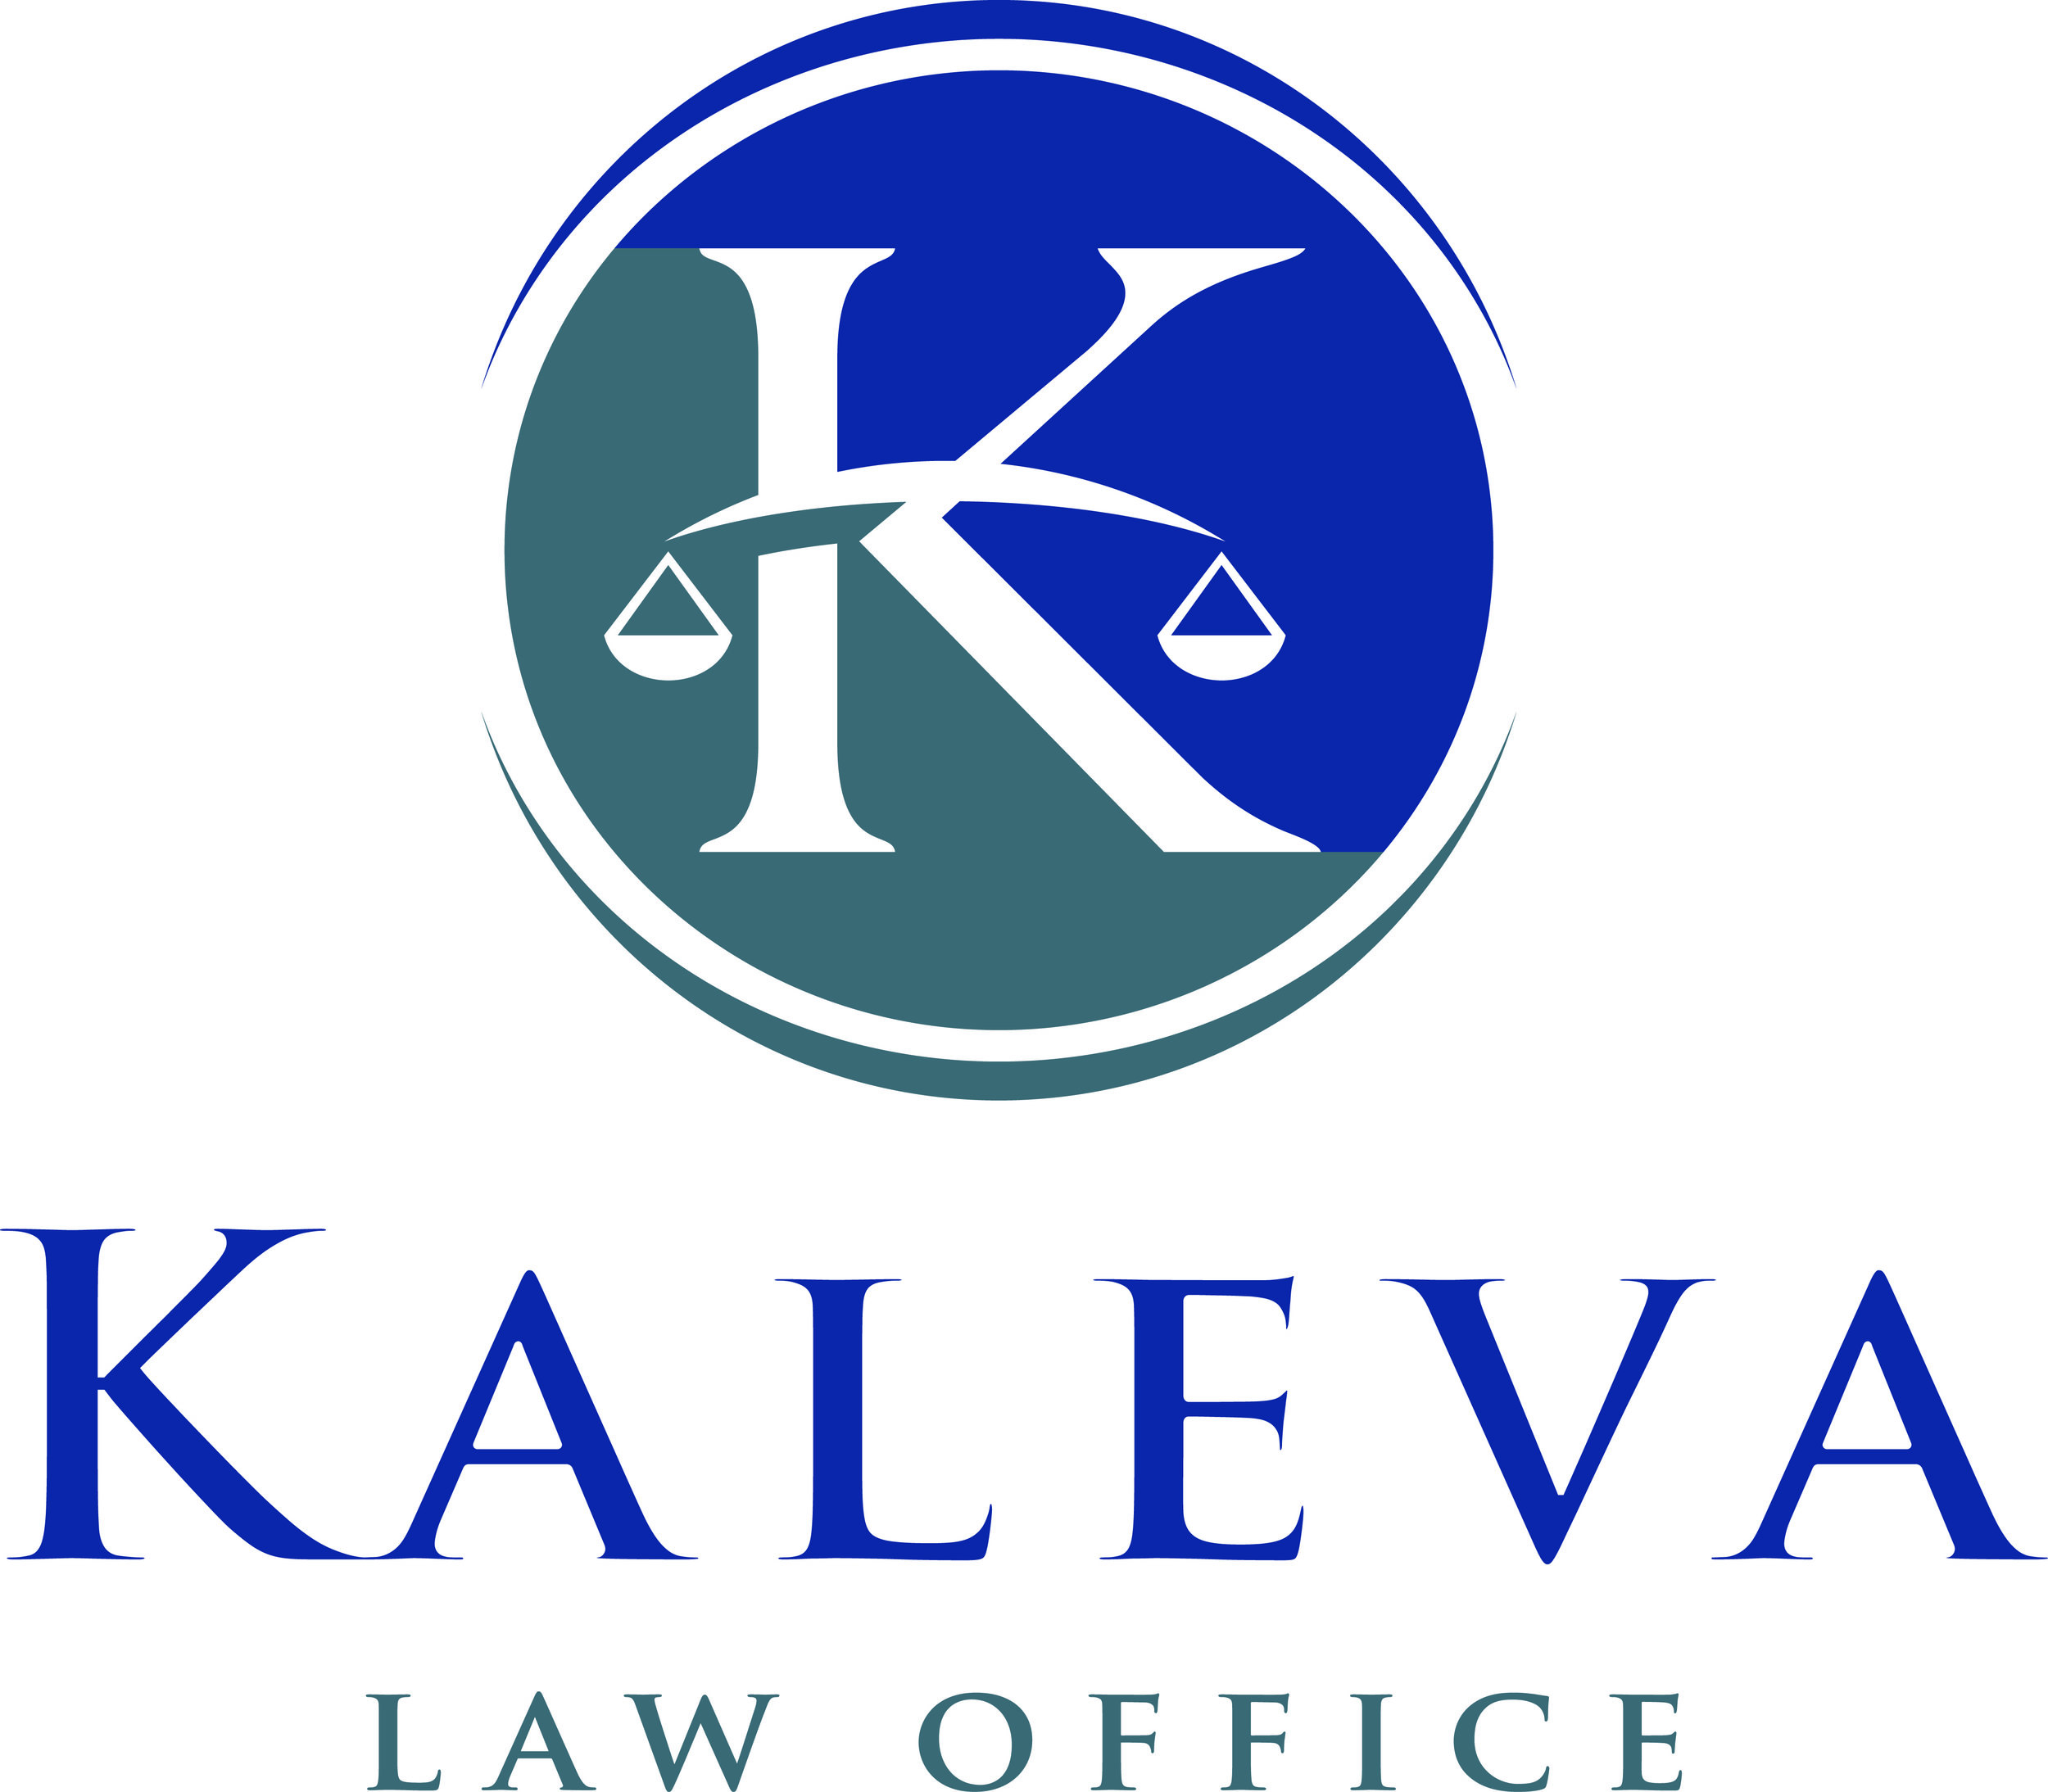 2019-2020 Principal's Academy and Law Library - Crucial school law topics explainedWith Elizabeth Kaleva, Esq.$460